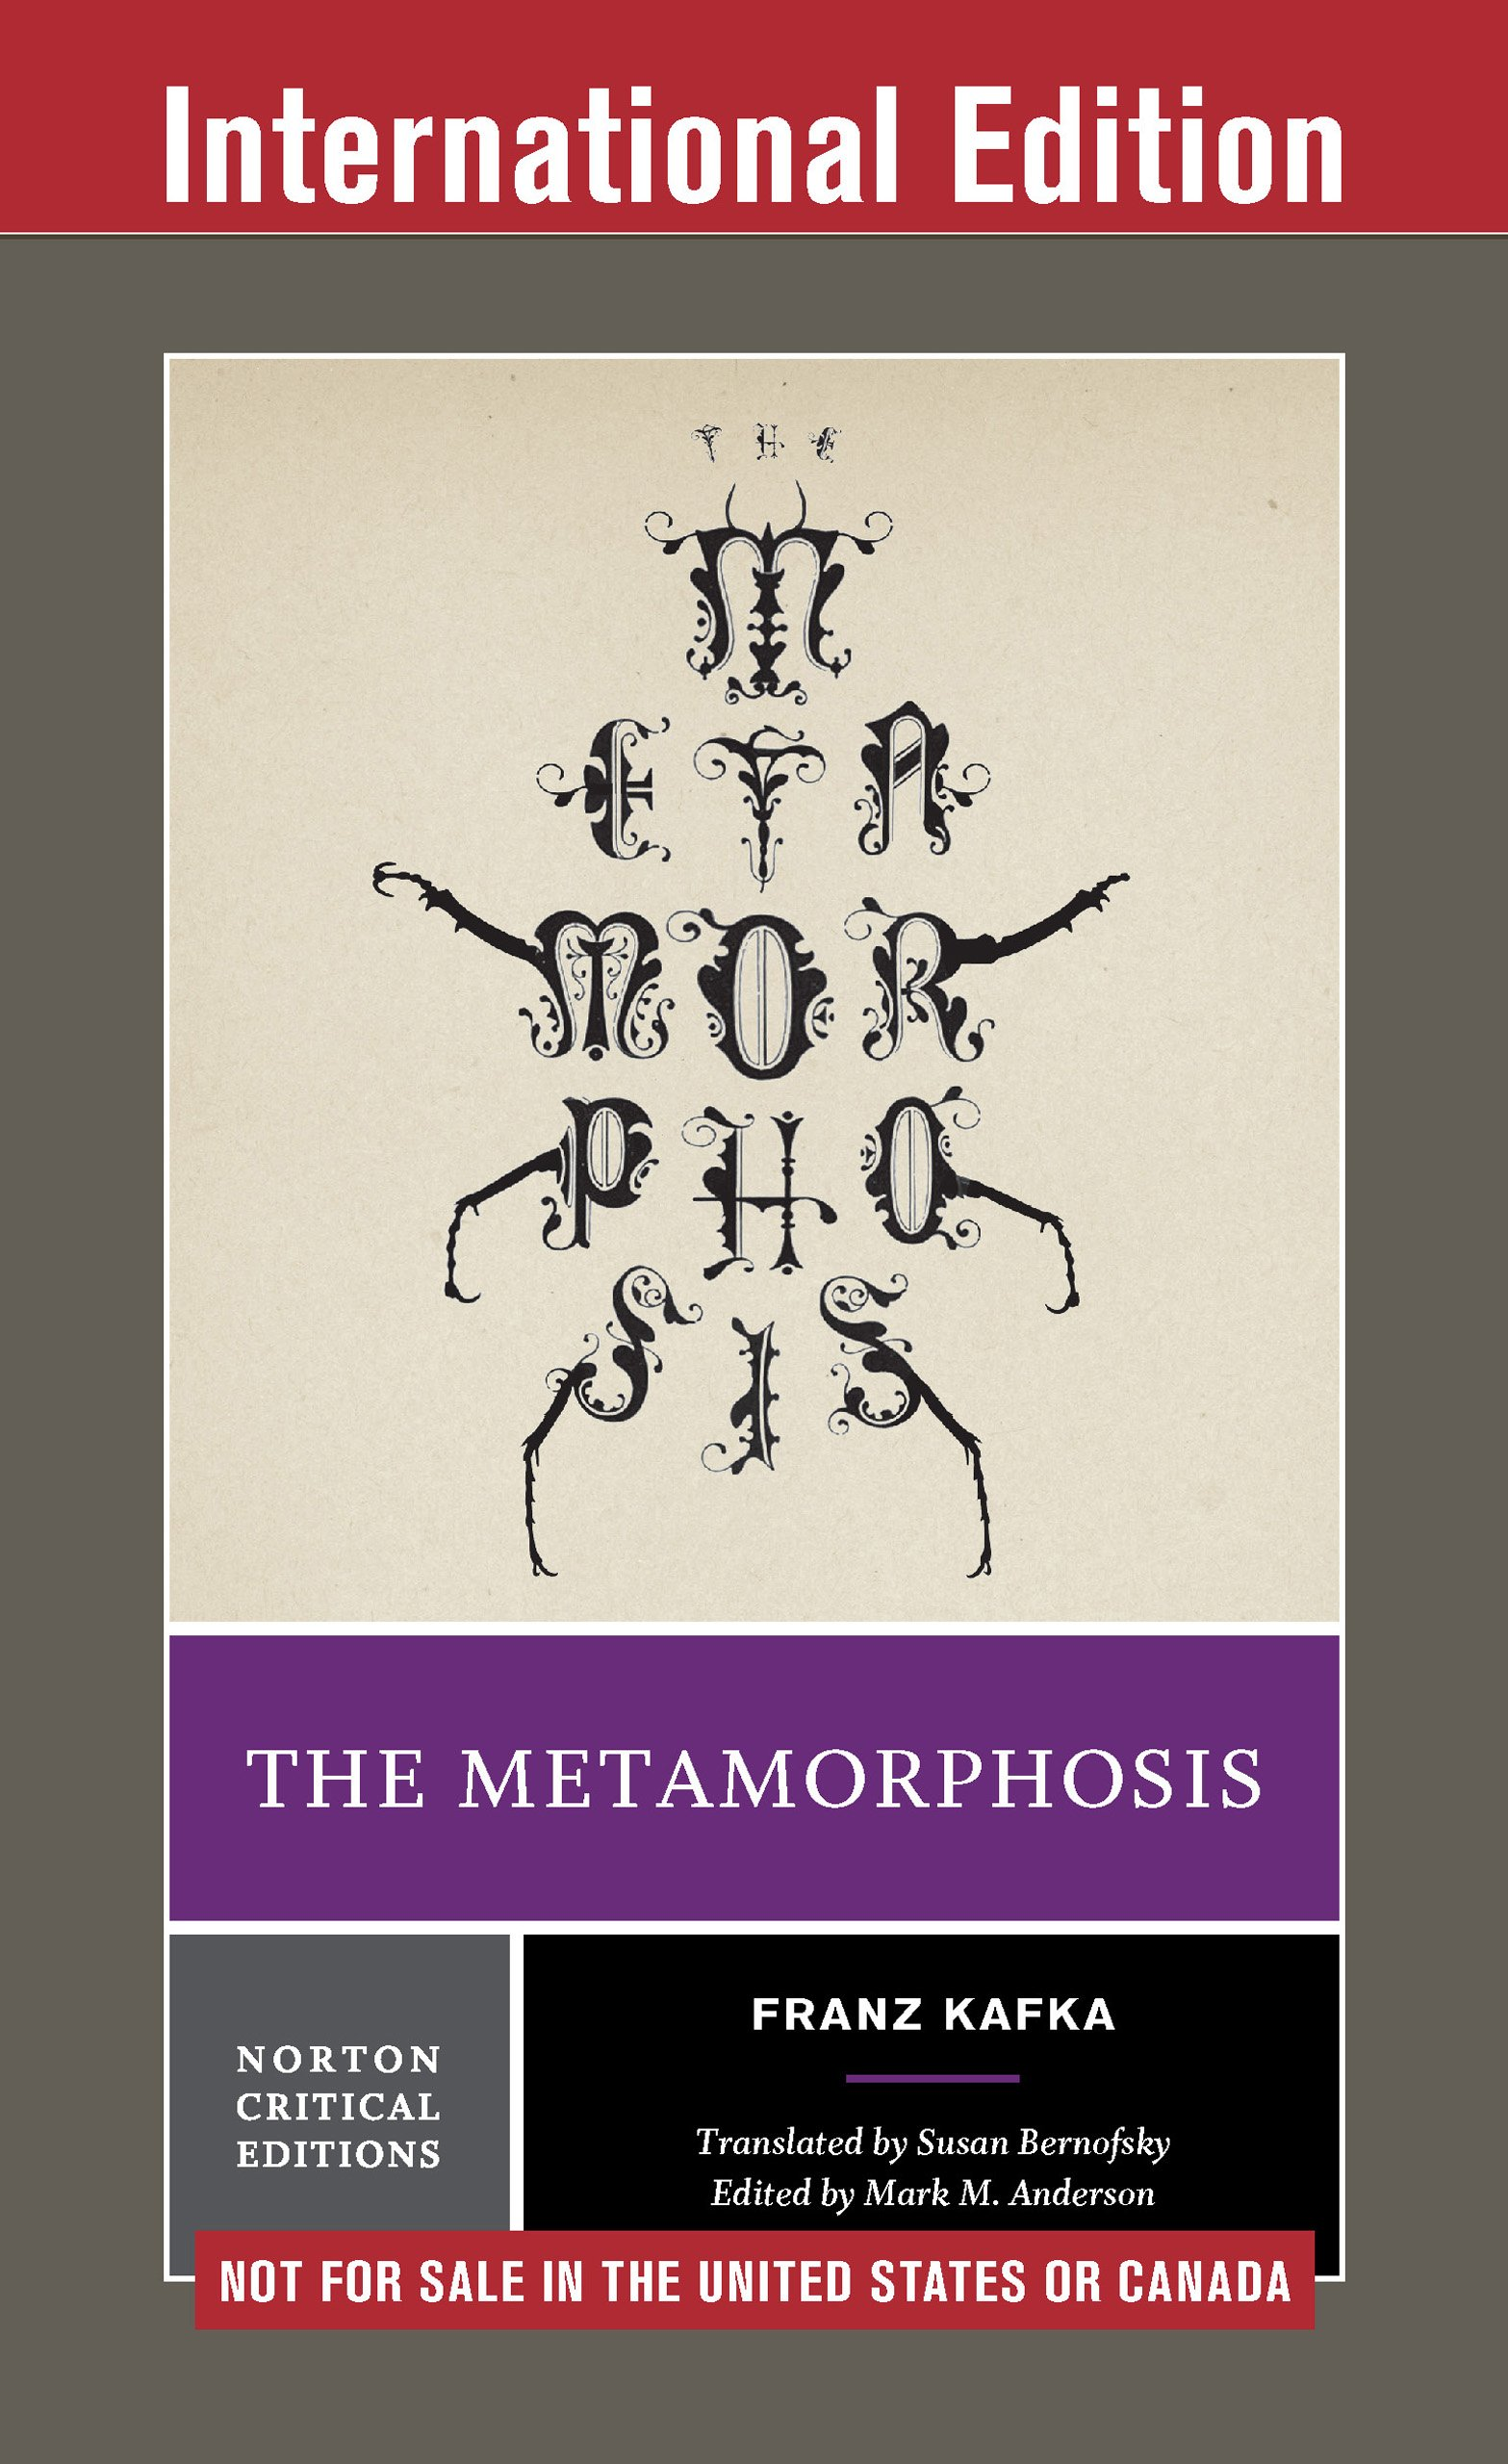 The Metamorphosis (First International Student Edition)  (Norton Critical Editions) (English Edition)